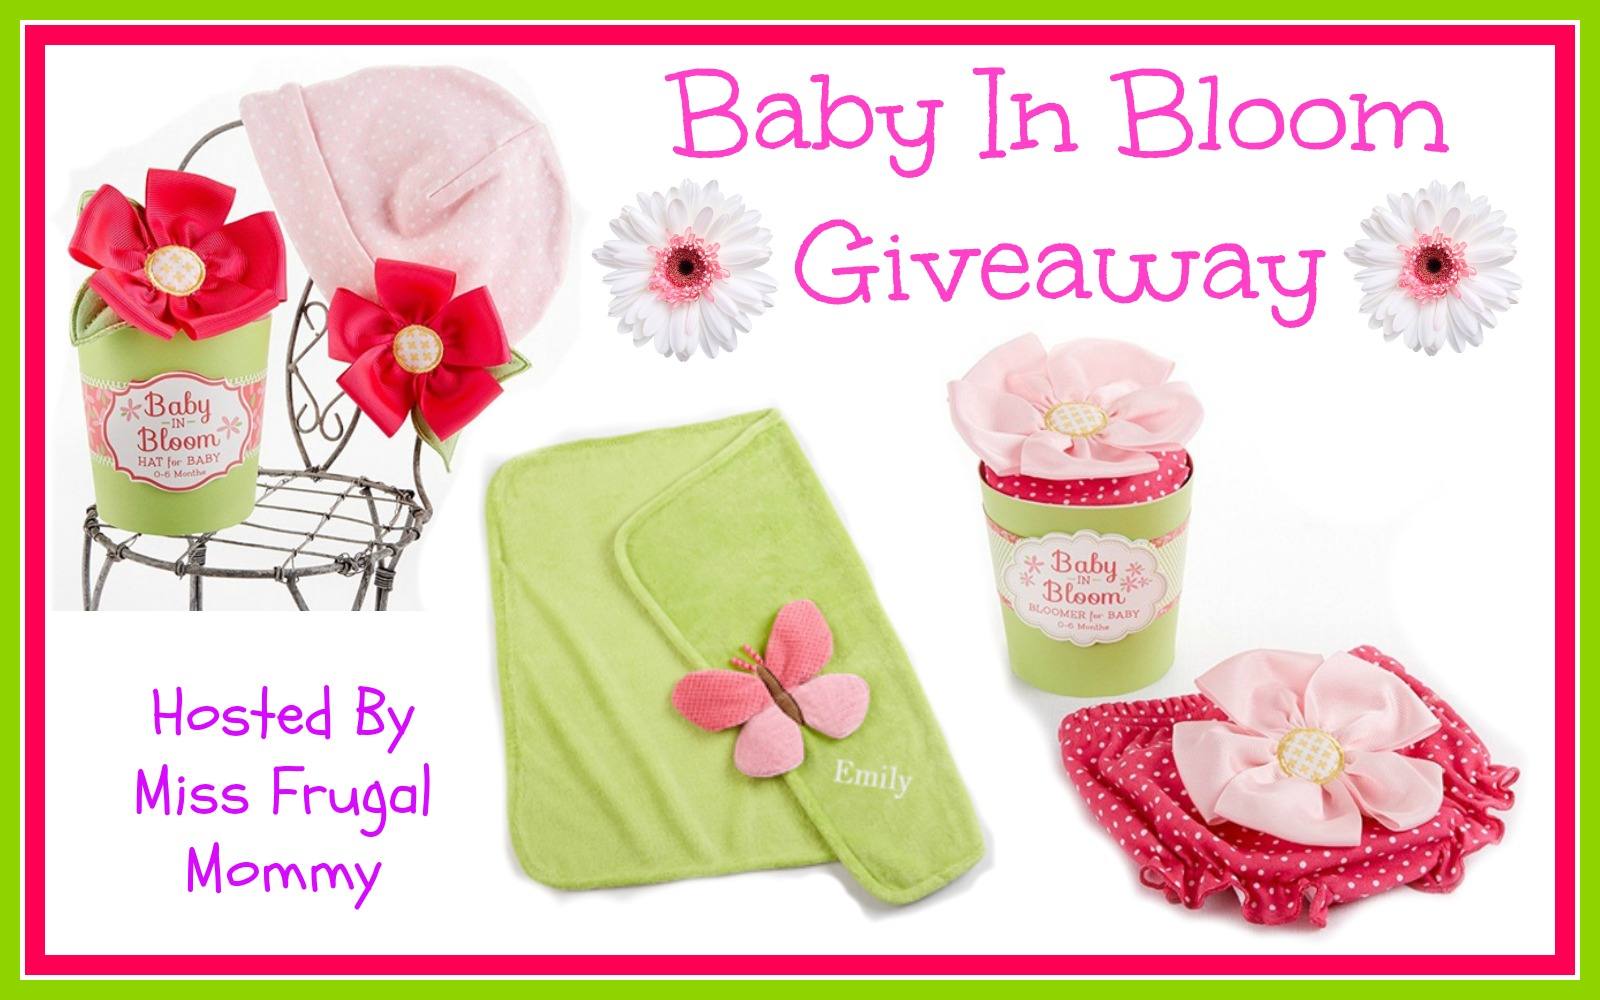 Baby In Bloom Giveaway